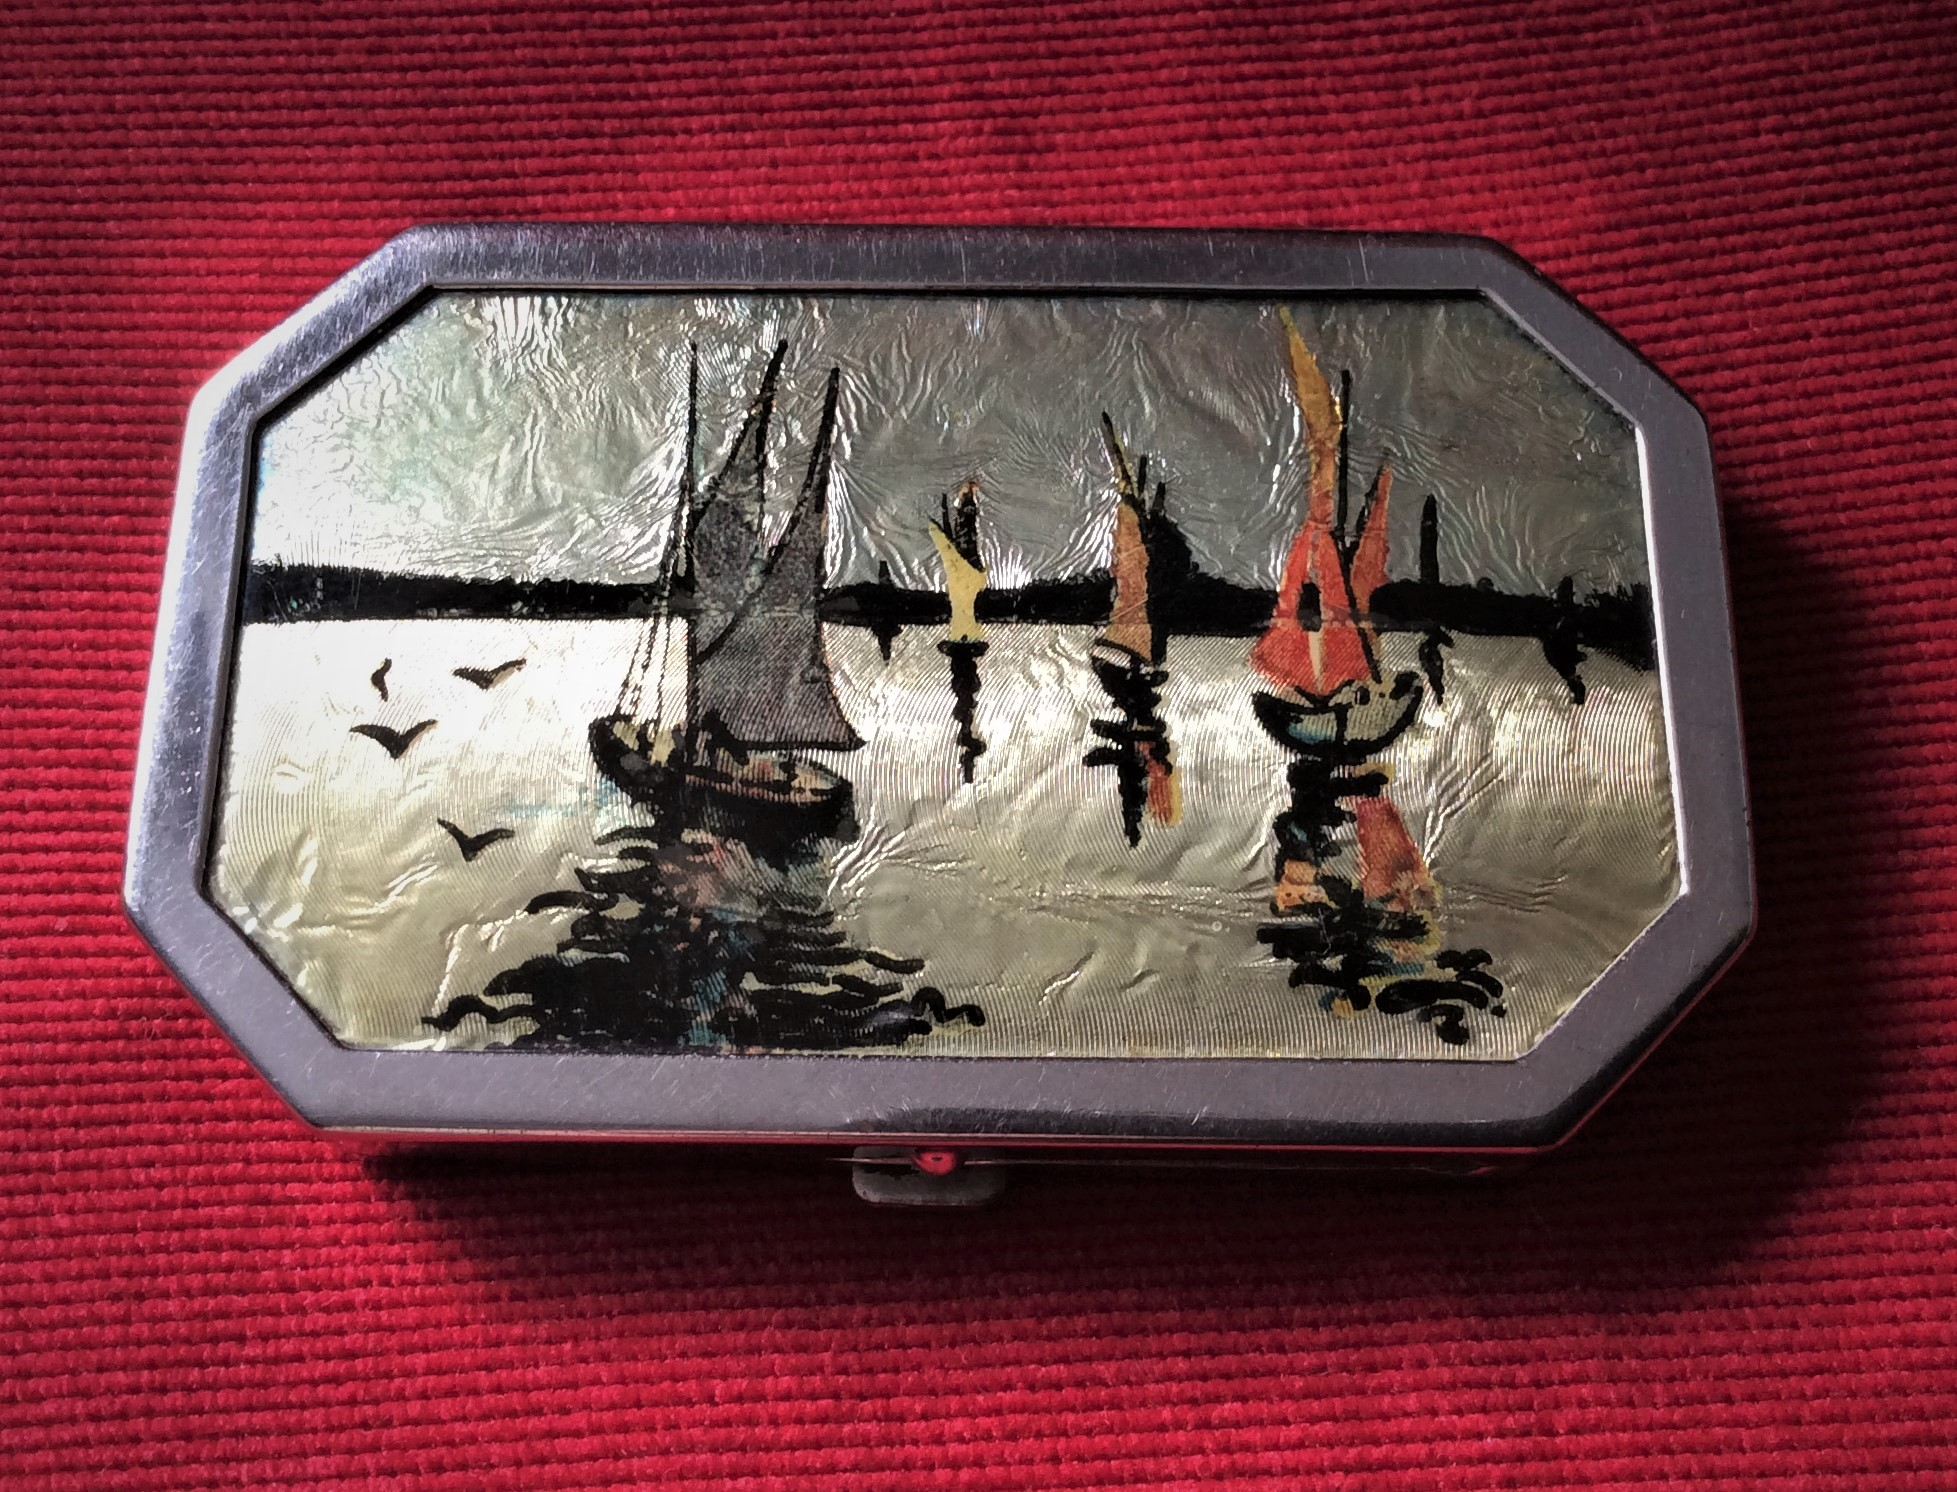 Art Deco Octagonal Metallic Foiled Vanity Compact with Sailing Scene on Reverse Painted celluloid